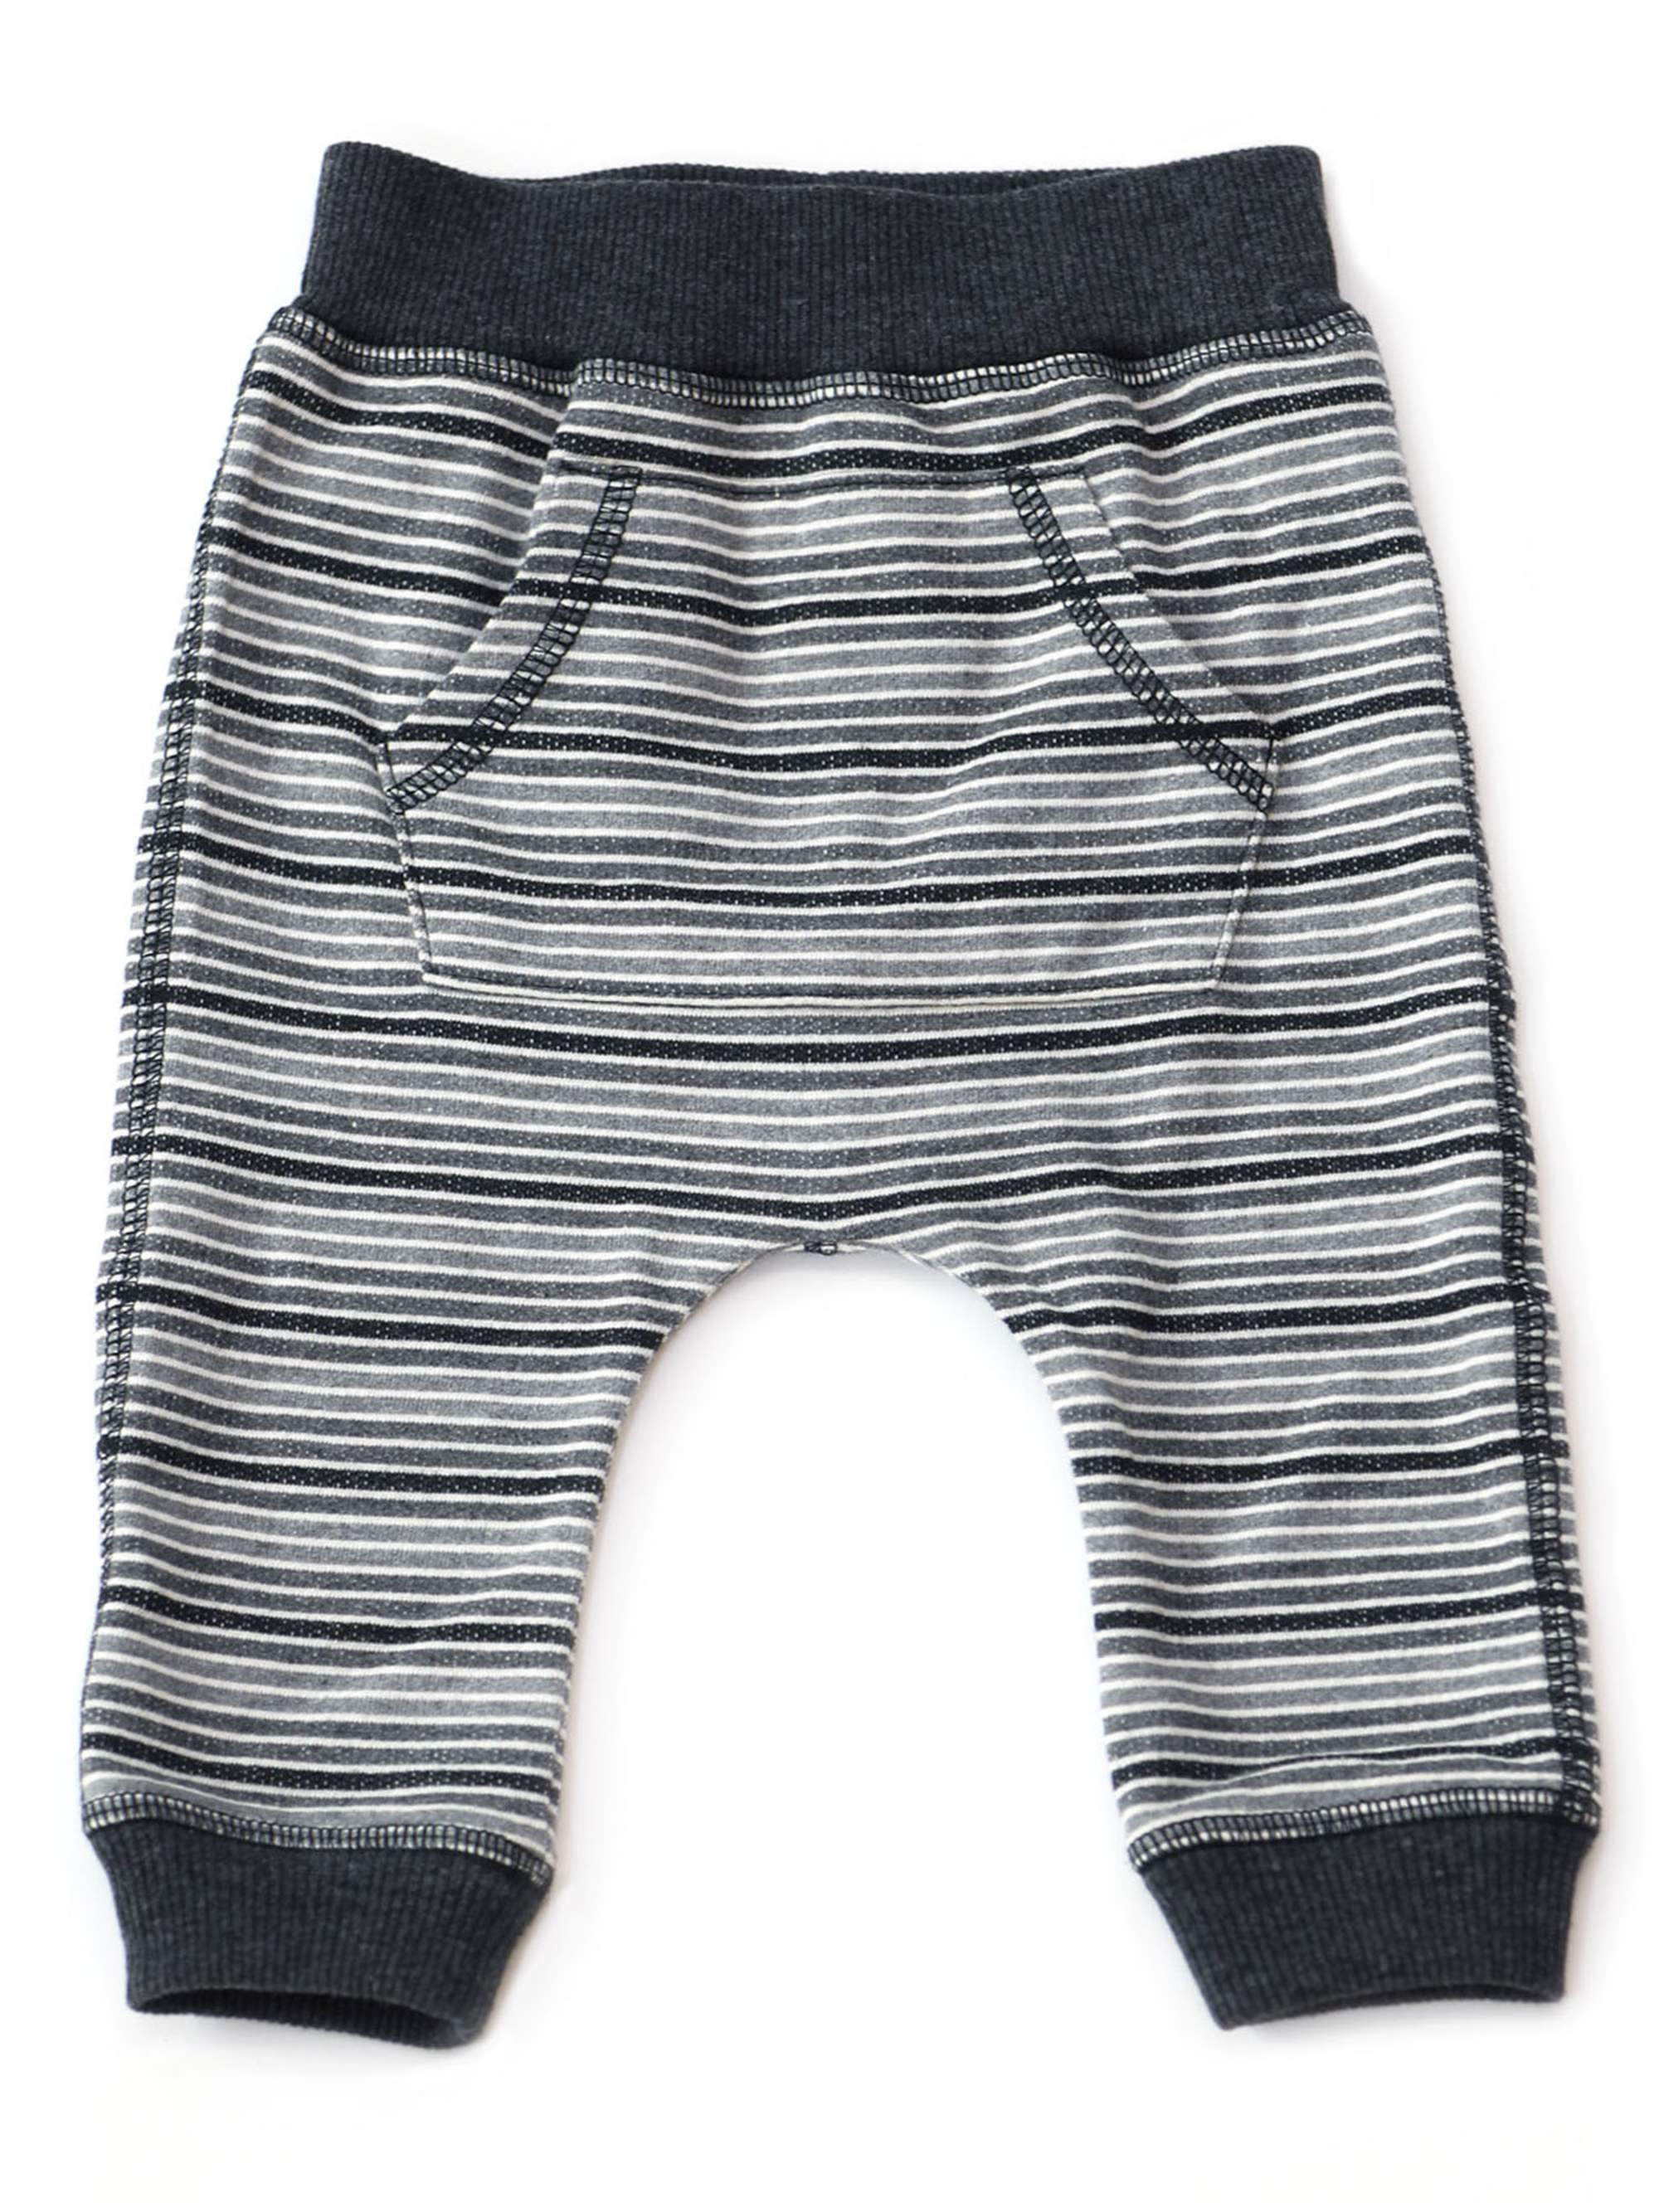 Kapital K Pull-on Jogger Pants (Baby Boys)